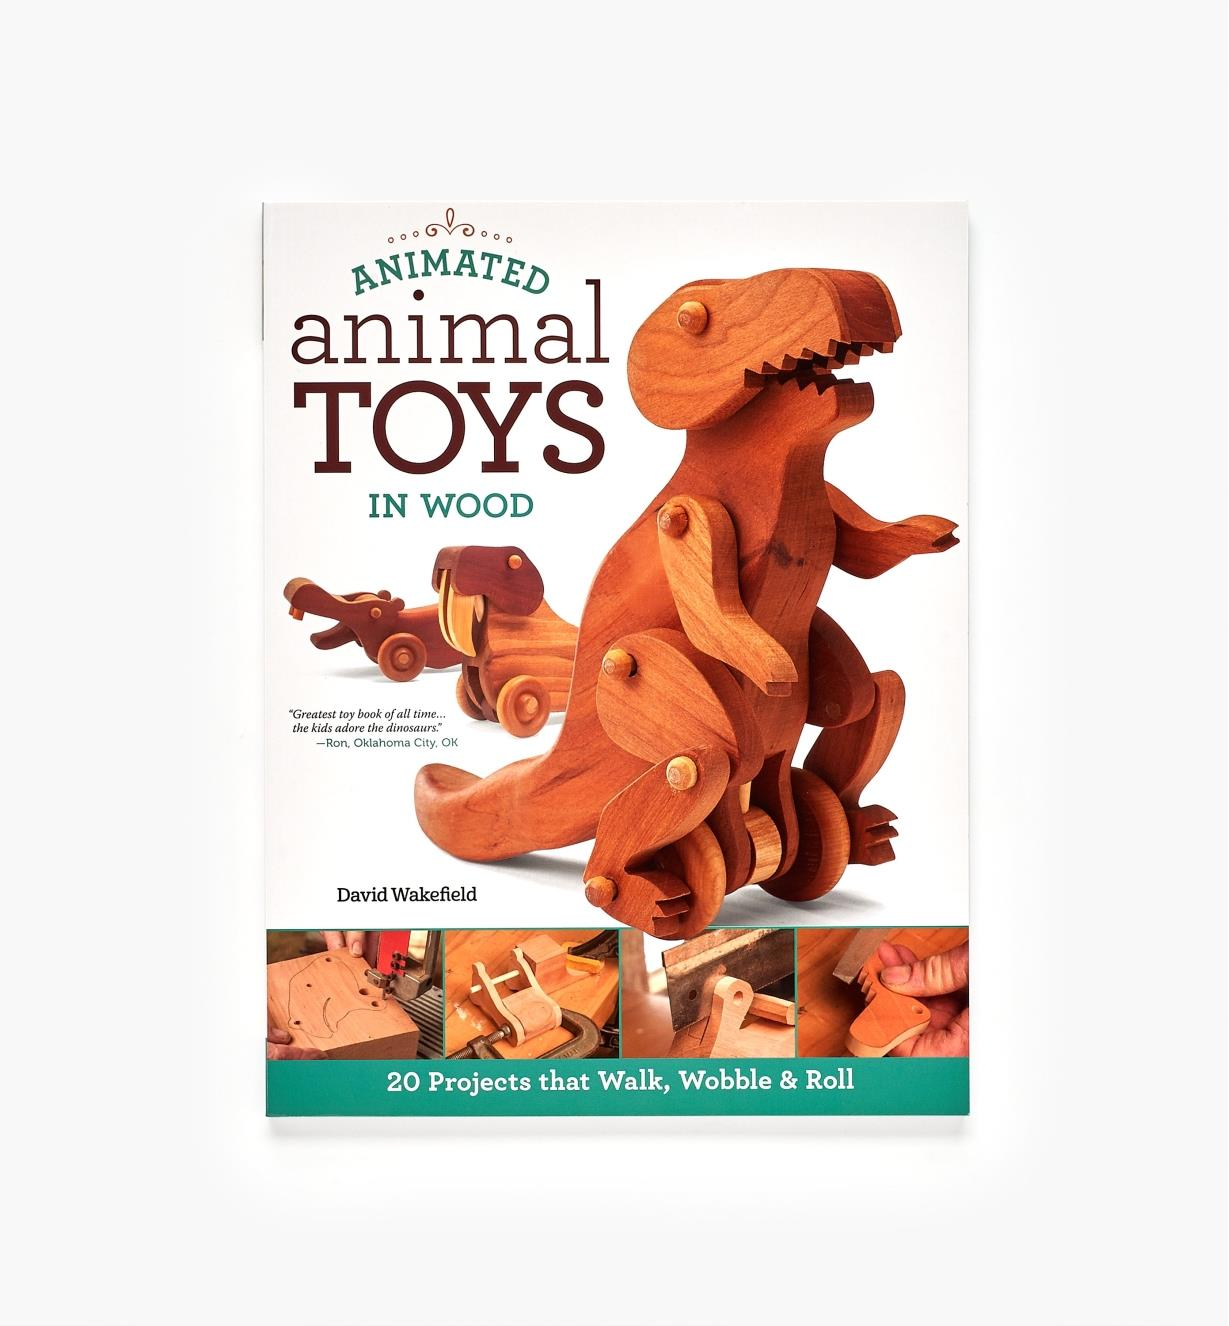 49L5098 - Animated Animal Toys in Wood